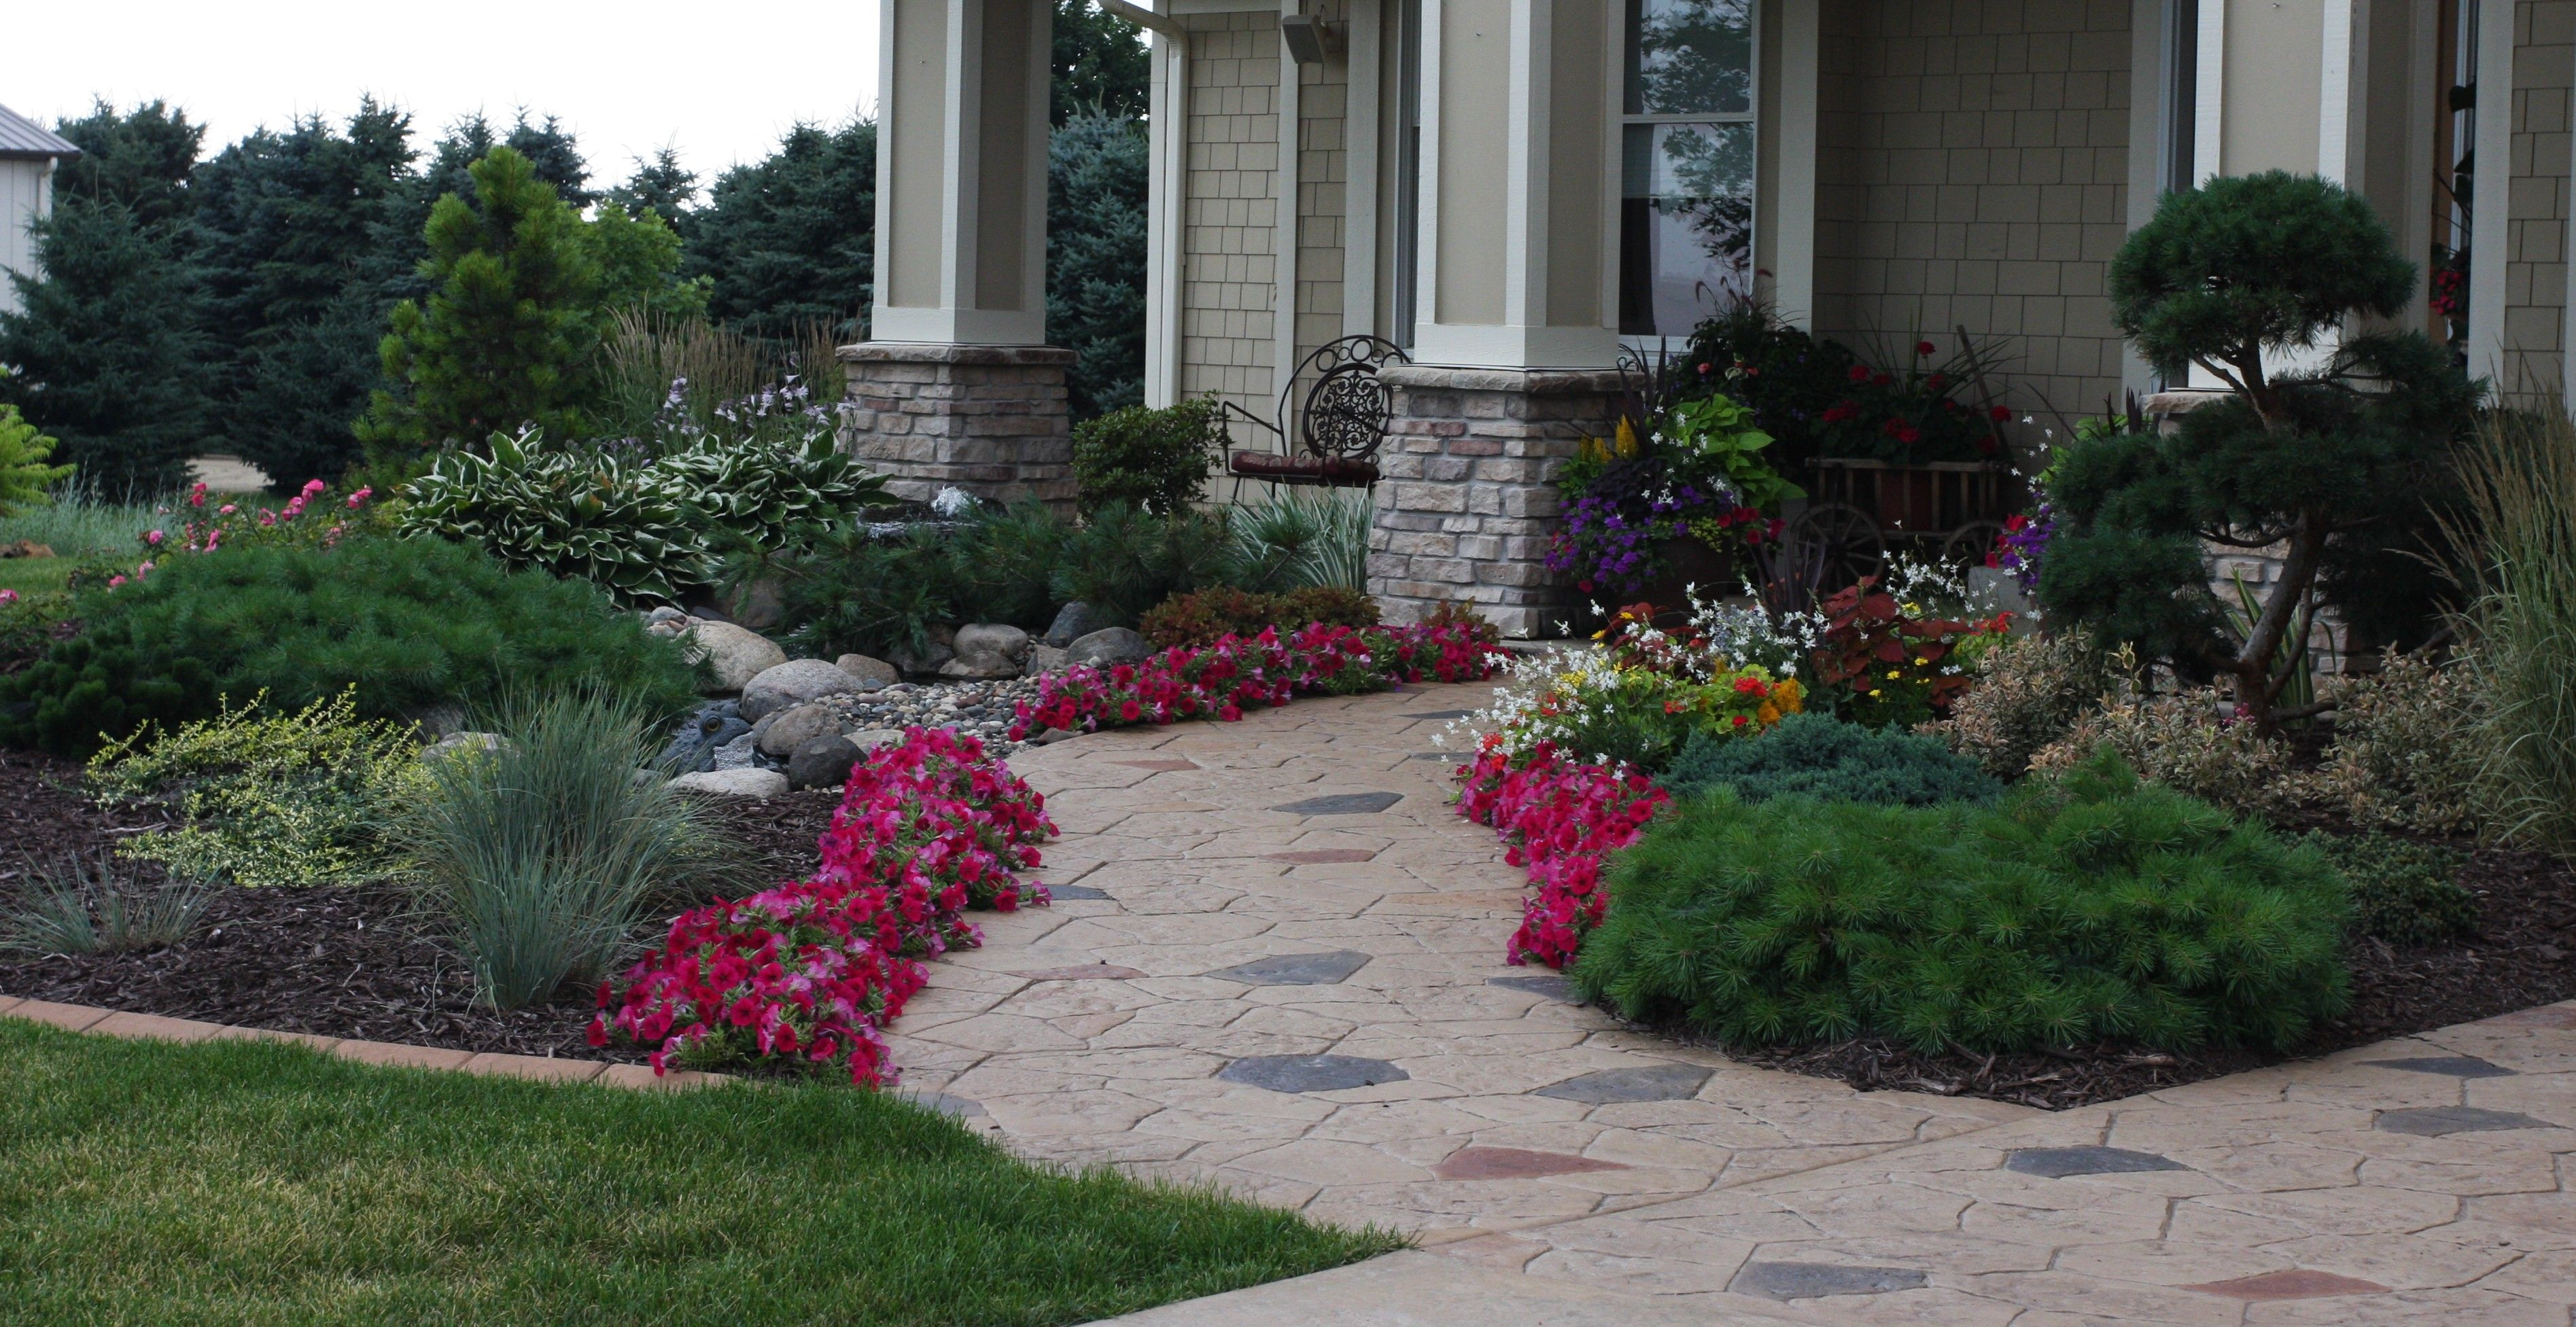 Landscaping front entrance design ideas landscape for Front garden landscaping